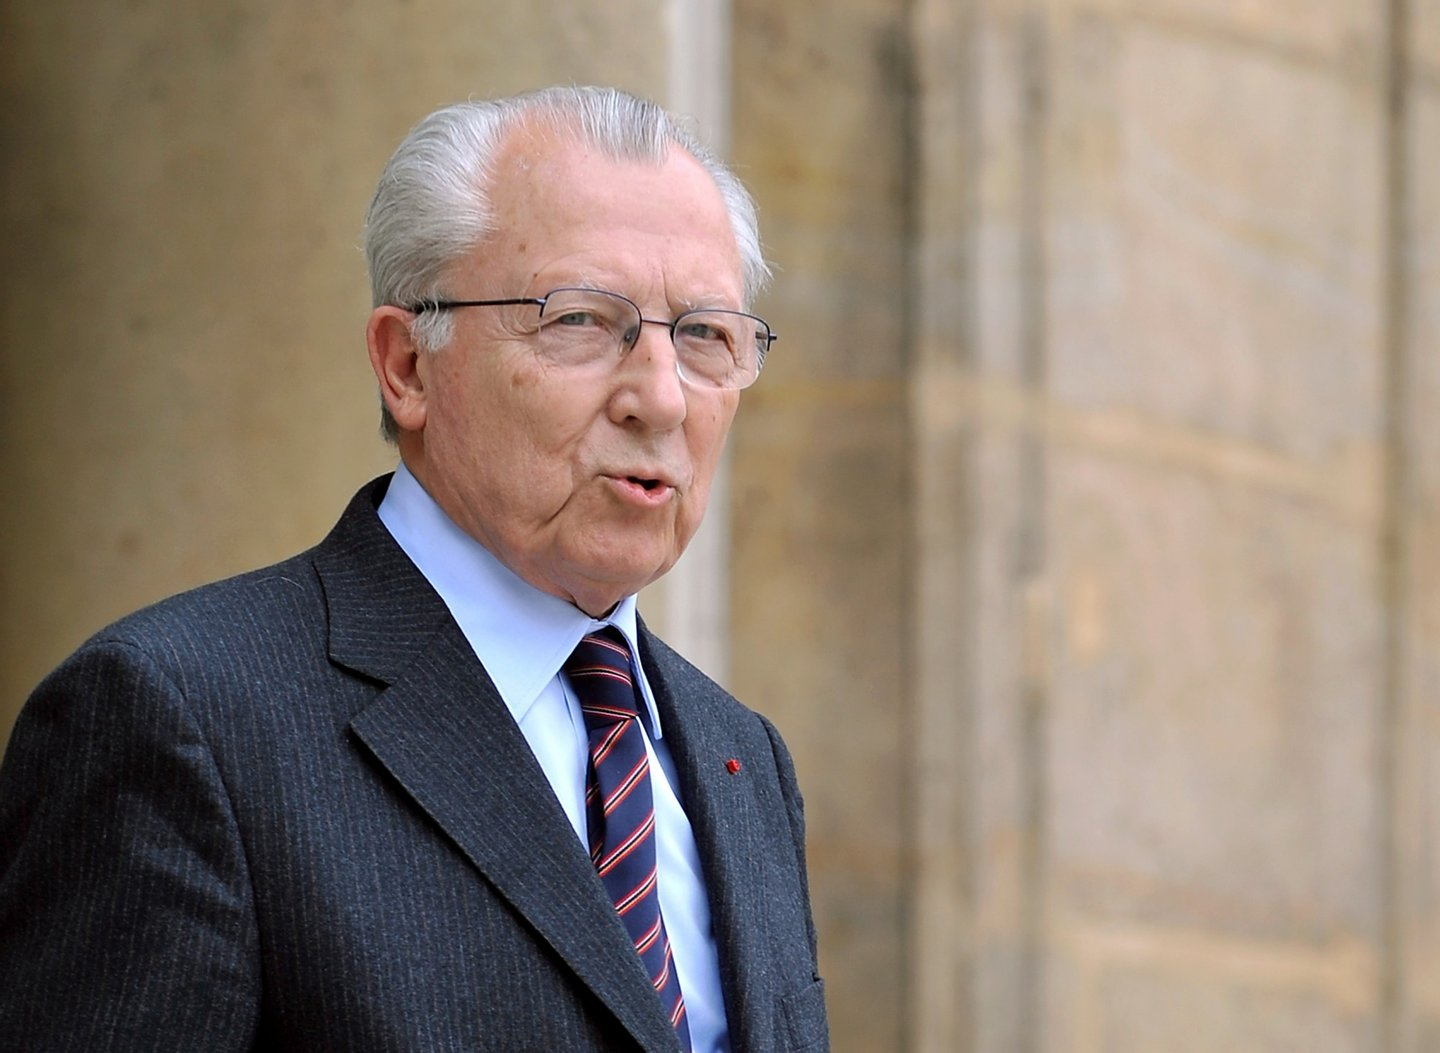 Former European Commission president Jacques Delors leaves Elysee Palace in Paris on May 19, 2008 following a meeting with French President Nicolas Sarkozy about the French EU presidency which begins on July 1, 2008. AFP PHOTO ERIC FEFERBERG        (Photo credit should read ERIC FEFERBERG/AFP/Getty Images)